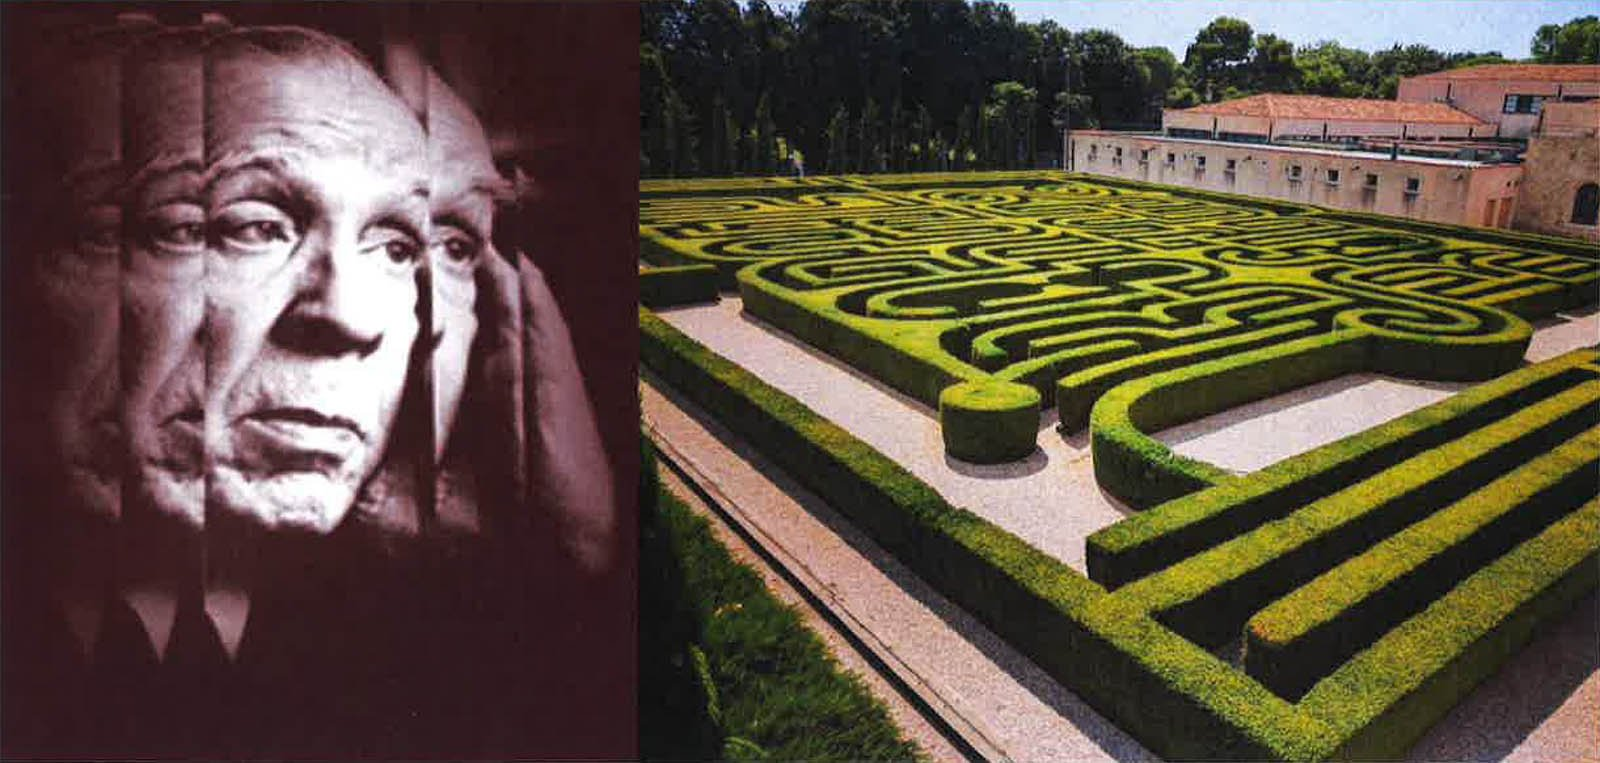 Photo of Jorge Luis Borges and a garden maze